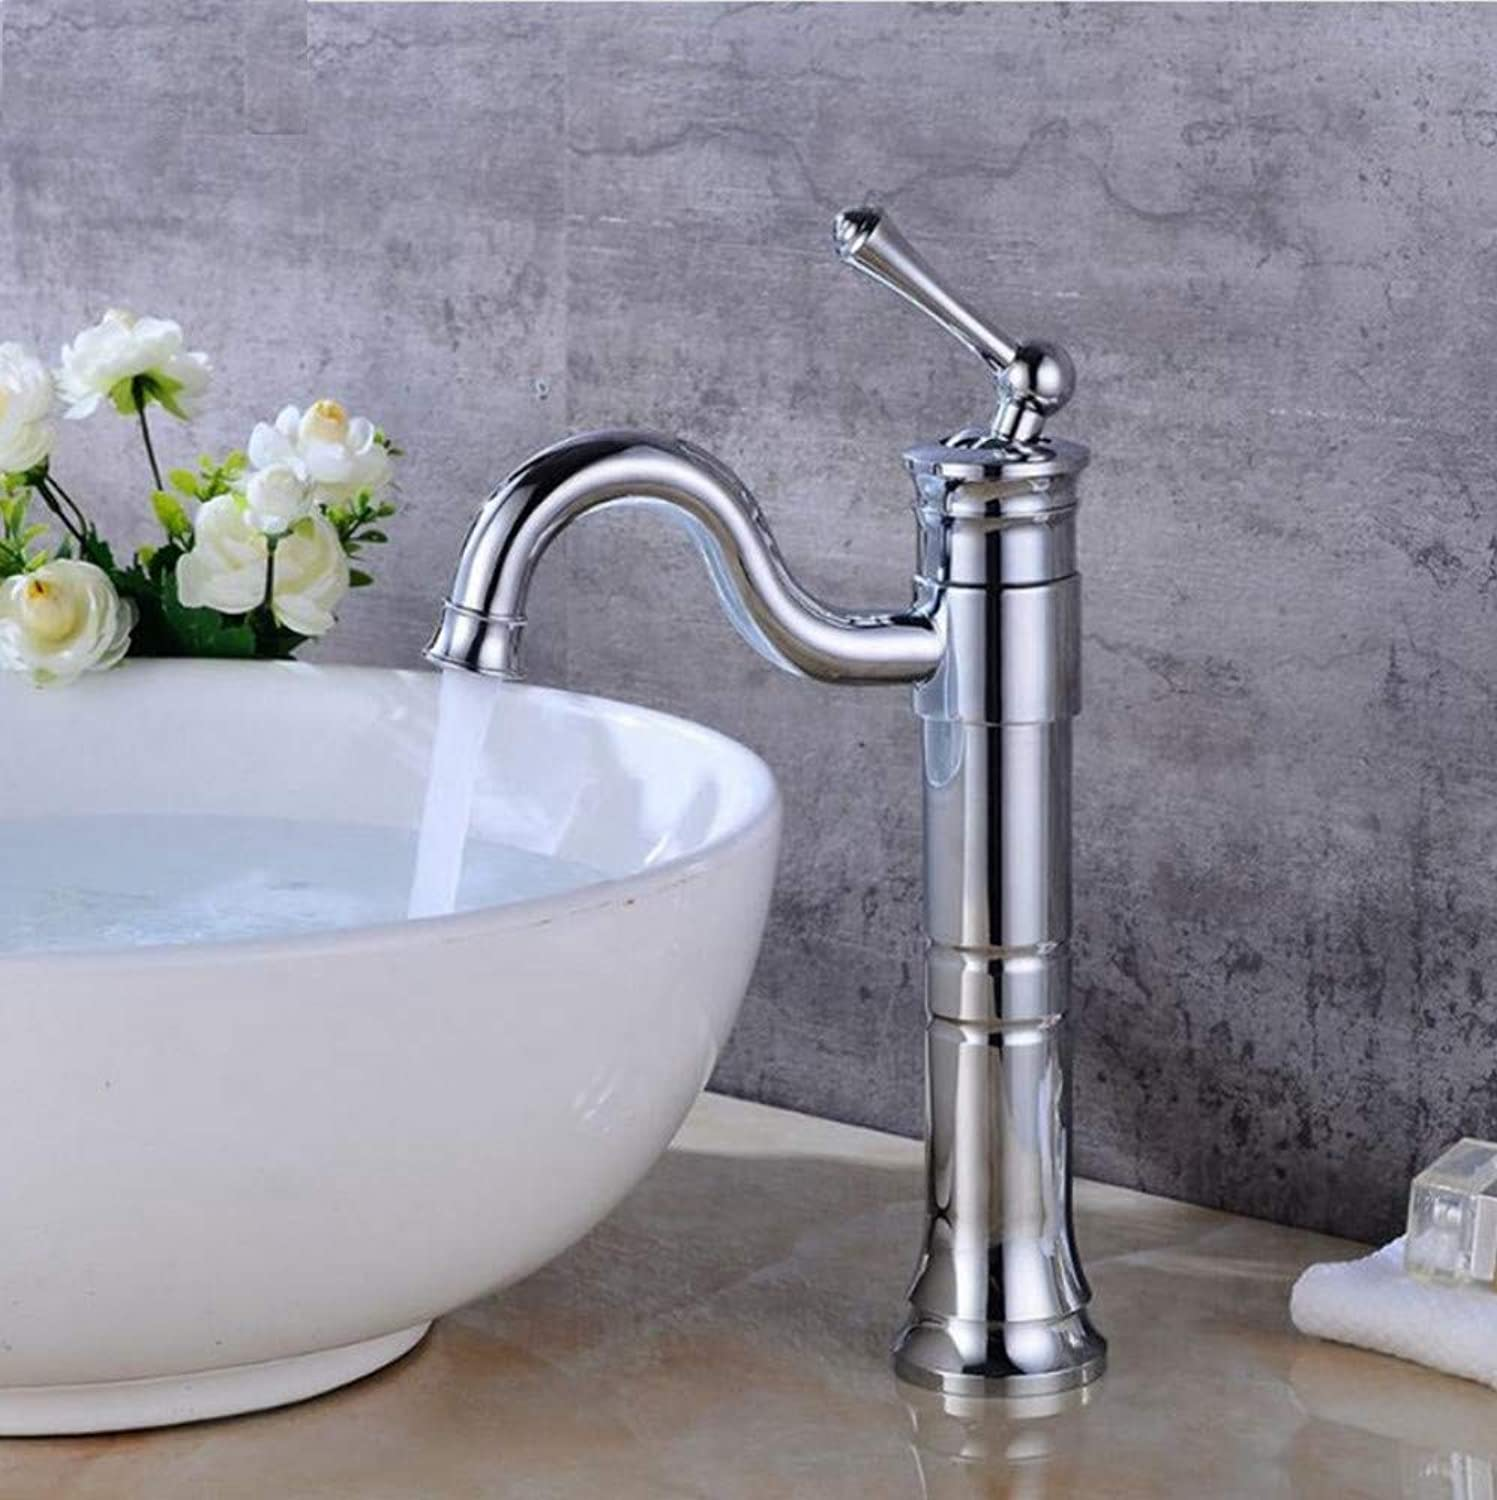 Dwthh Bathroom Tall Basin Sink Faucet Hot and Cold Water Mixer Crane Antique Bronze Faucets Deck Mounted Single Handle